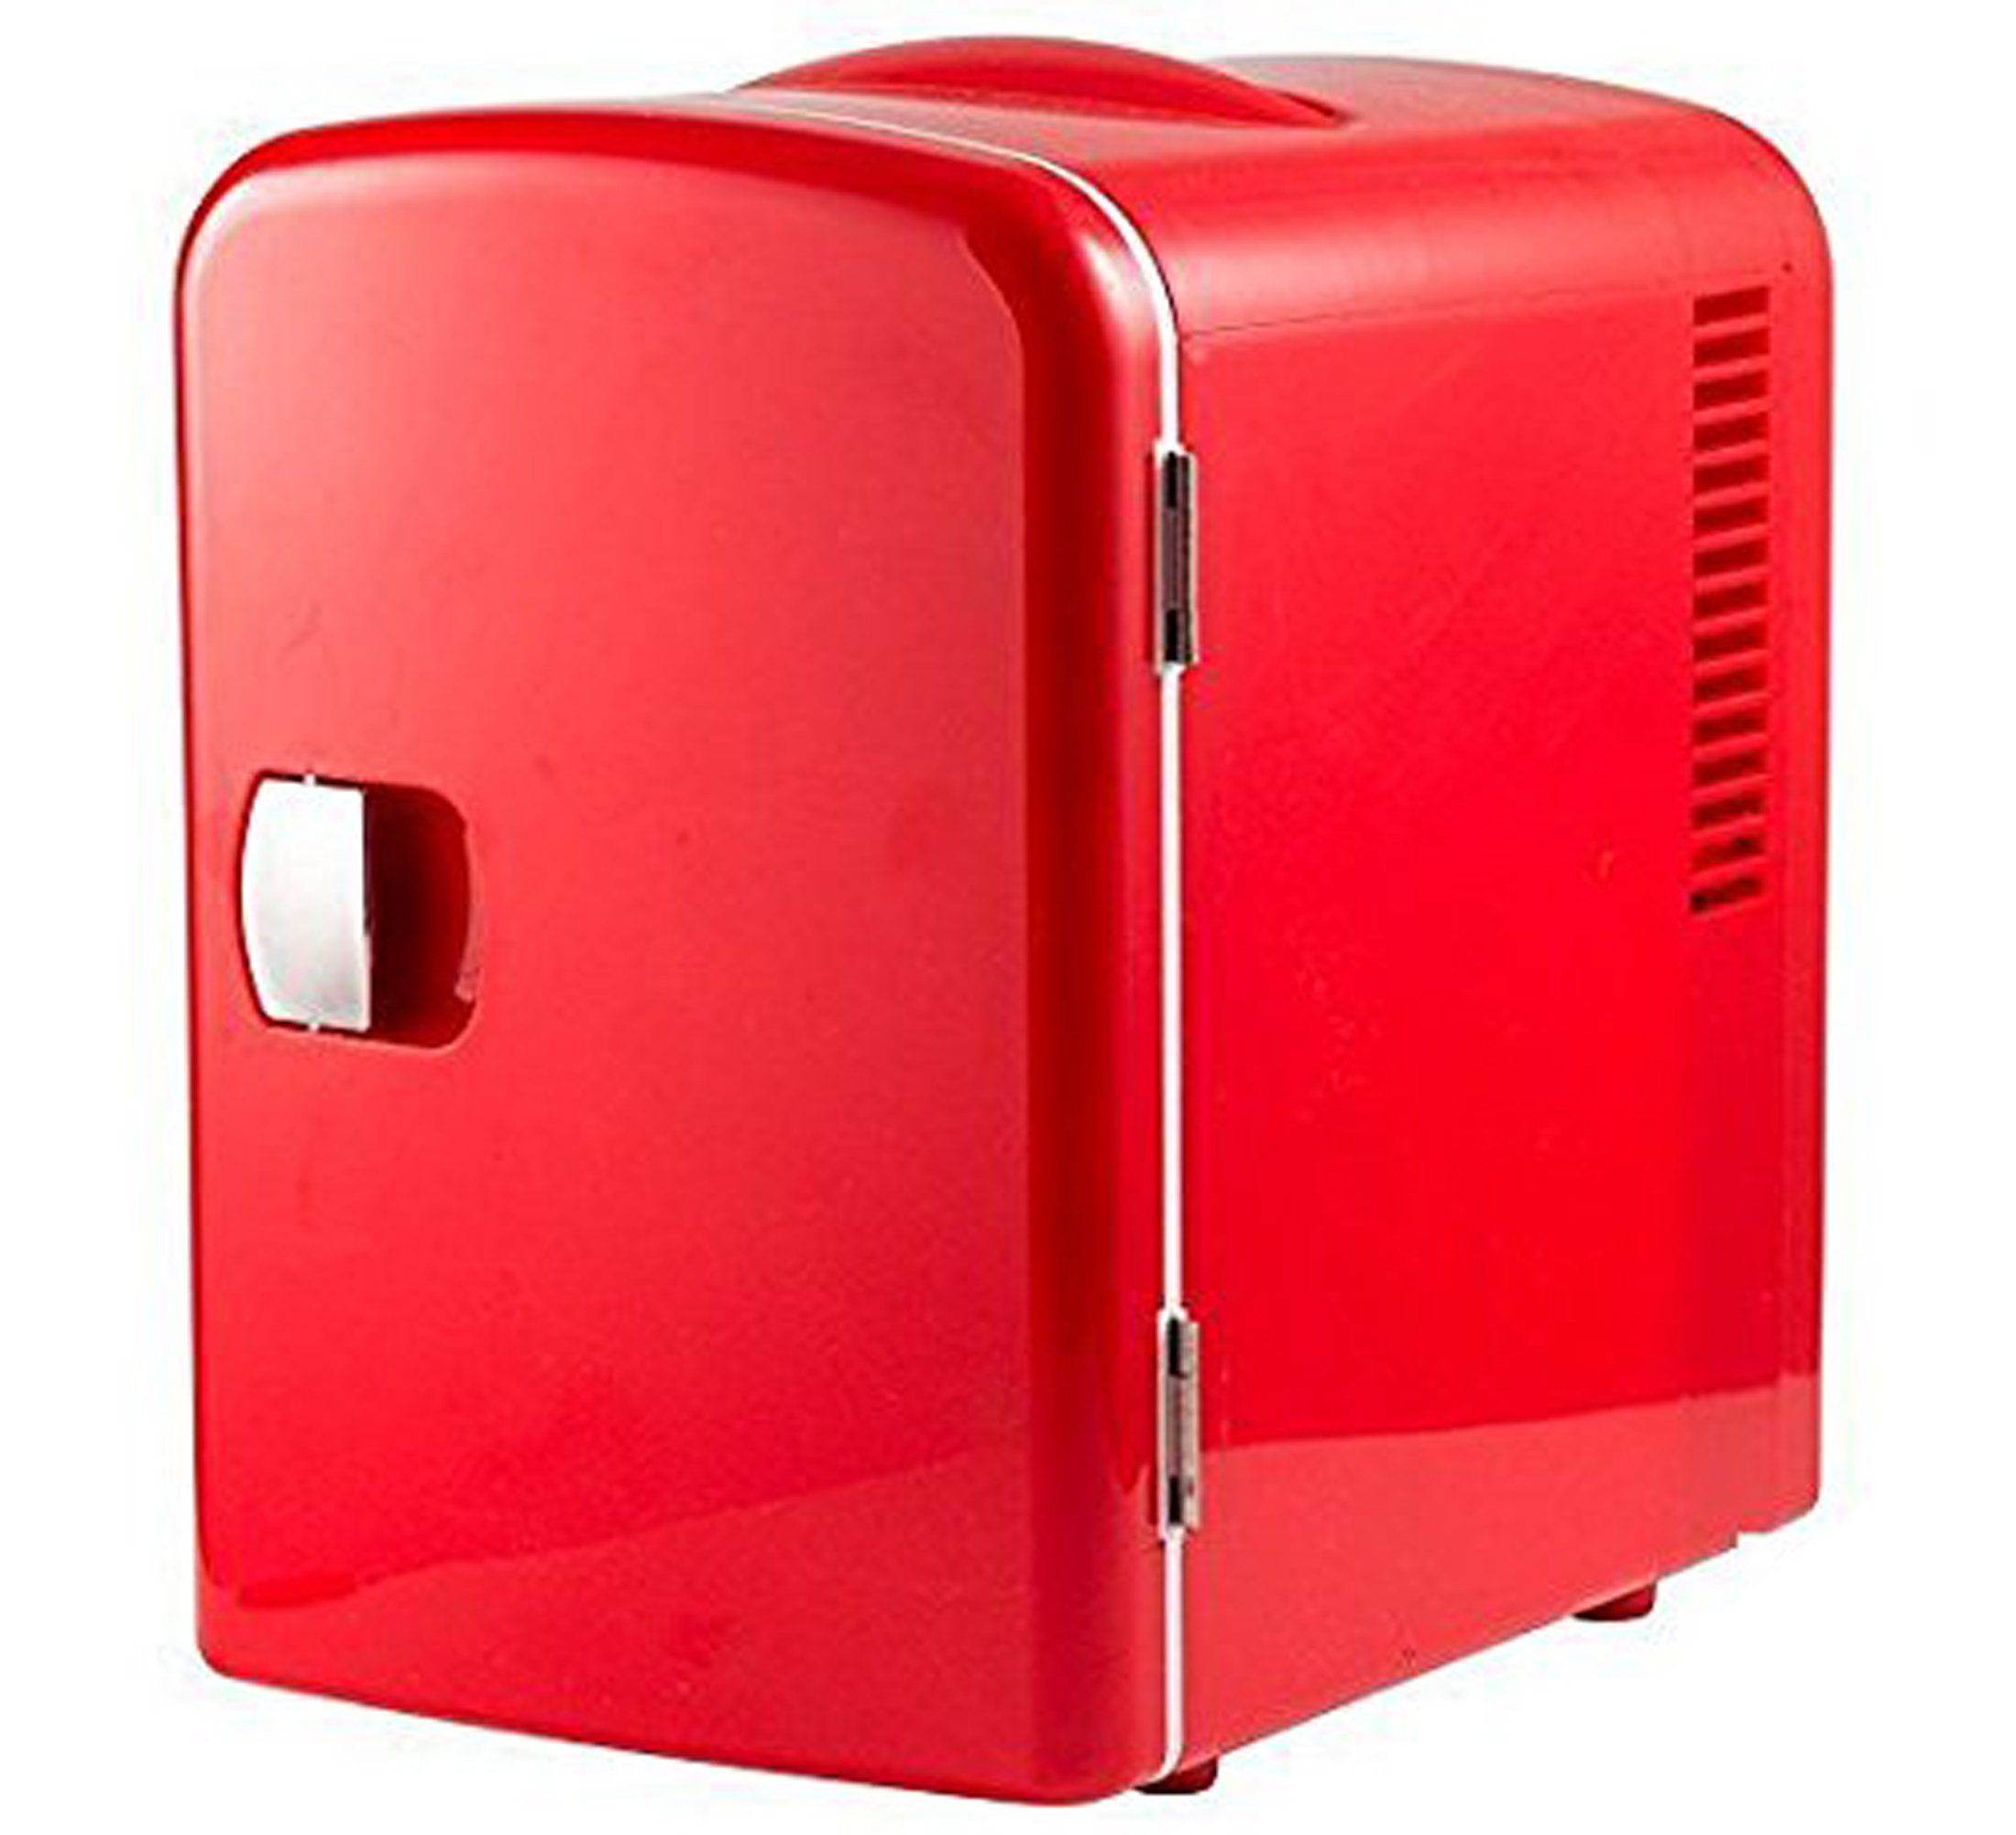 Gourmia GMF600 Thermoelectric Mini Fridge Cooler and Warmer - 4 Liter/ 6 Can - For Home,Office, Car, Dorm or Boat - Compact & Portable - AC & DC Power Cords - Red